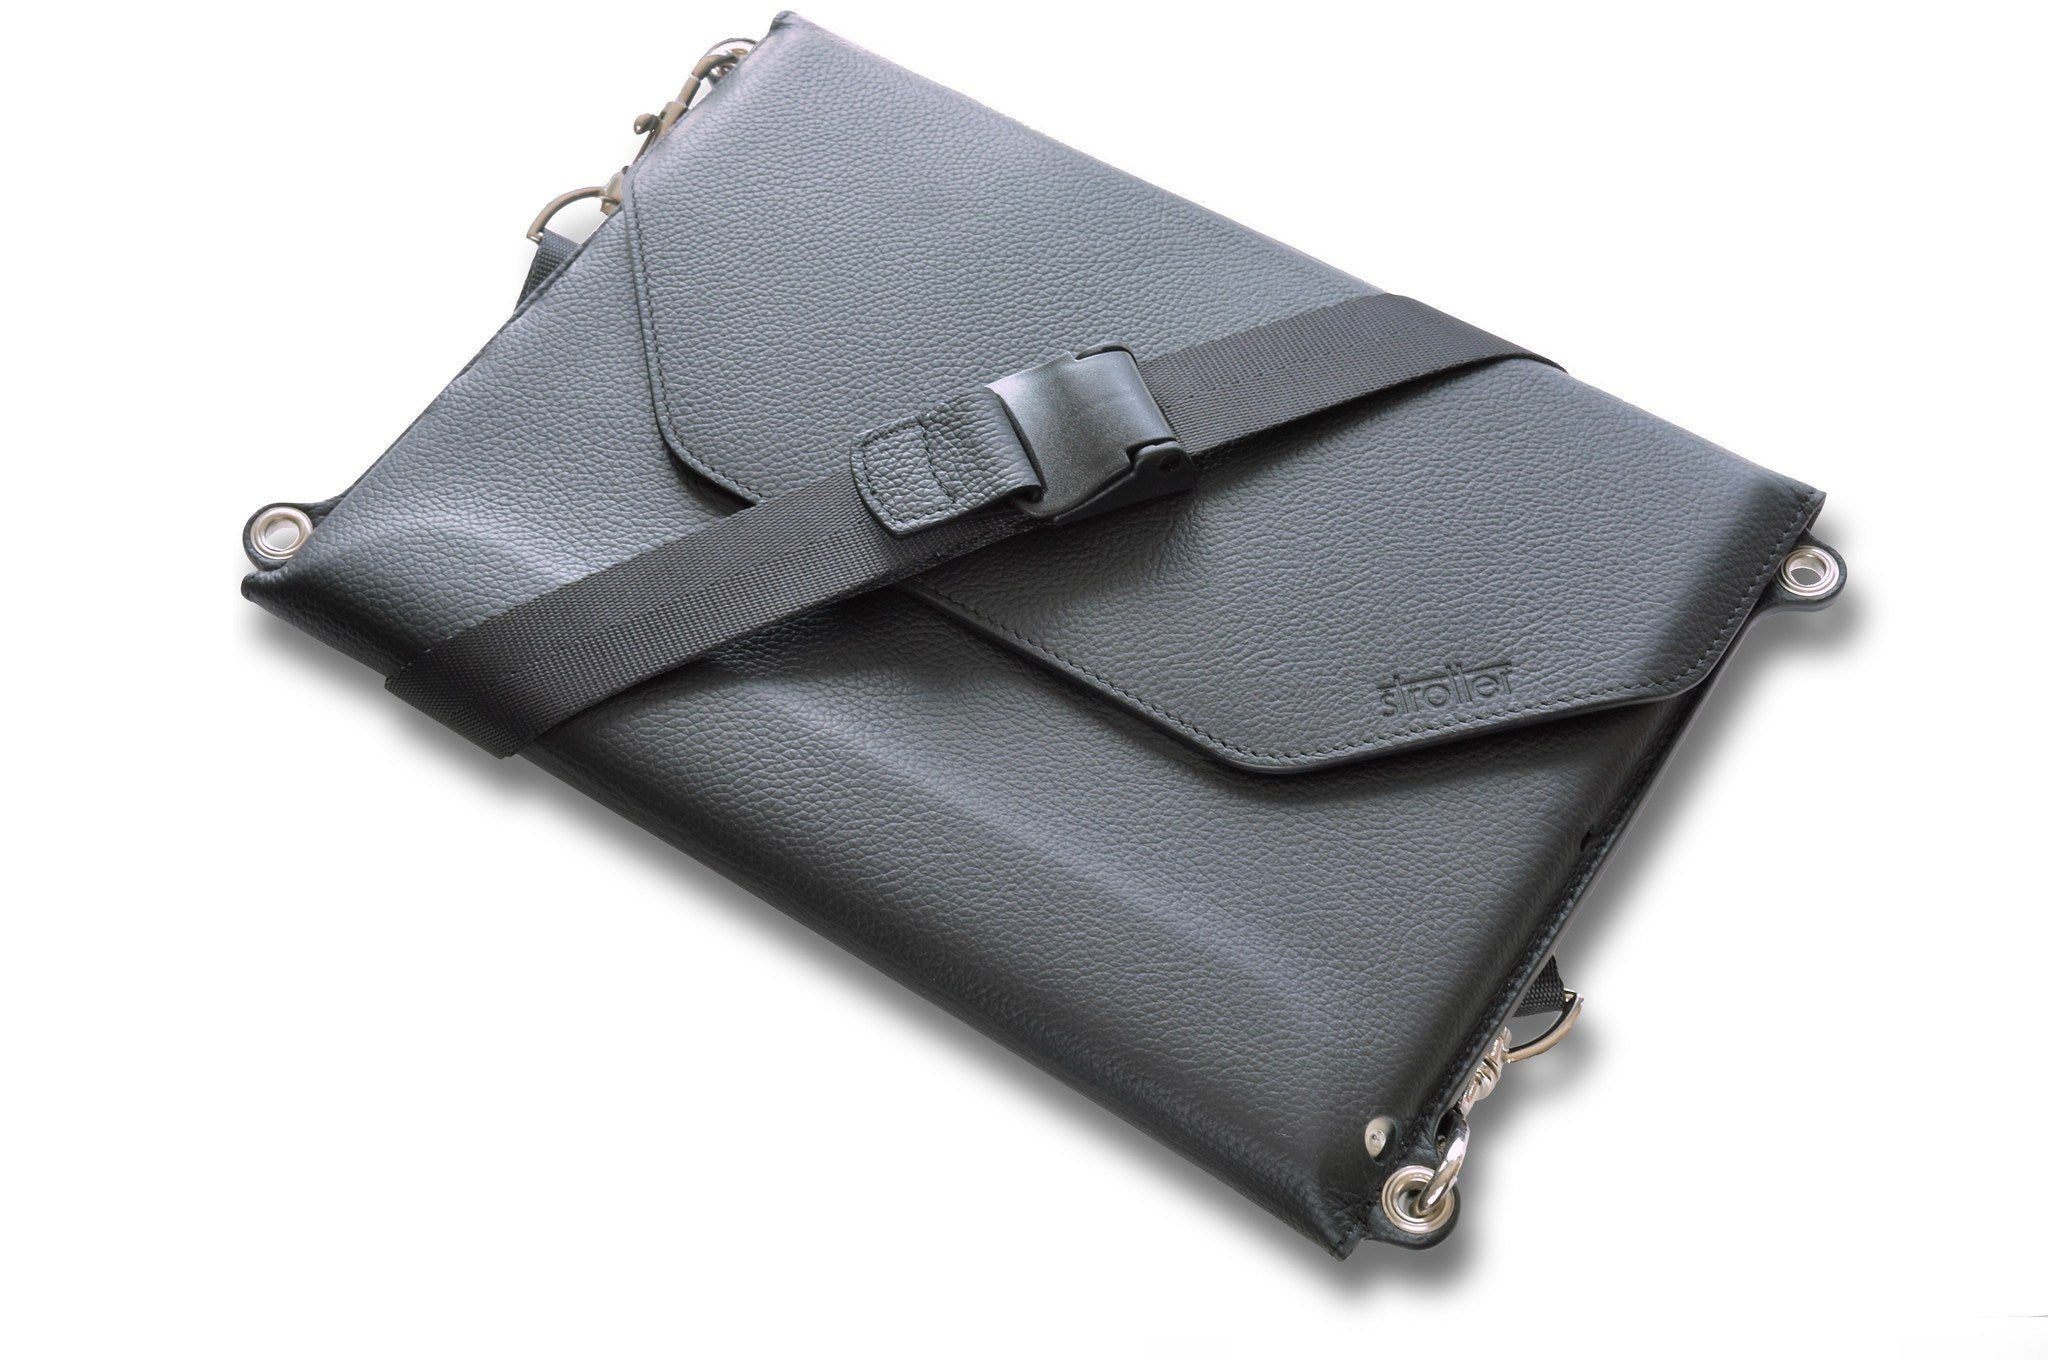 "Carrying case with shoulder strap for iPad Pro 9.7"". Turns into a mobile desk."